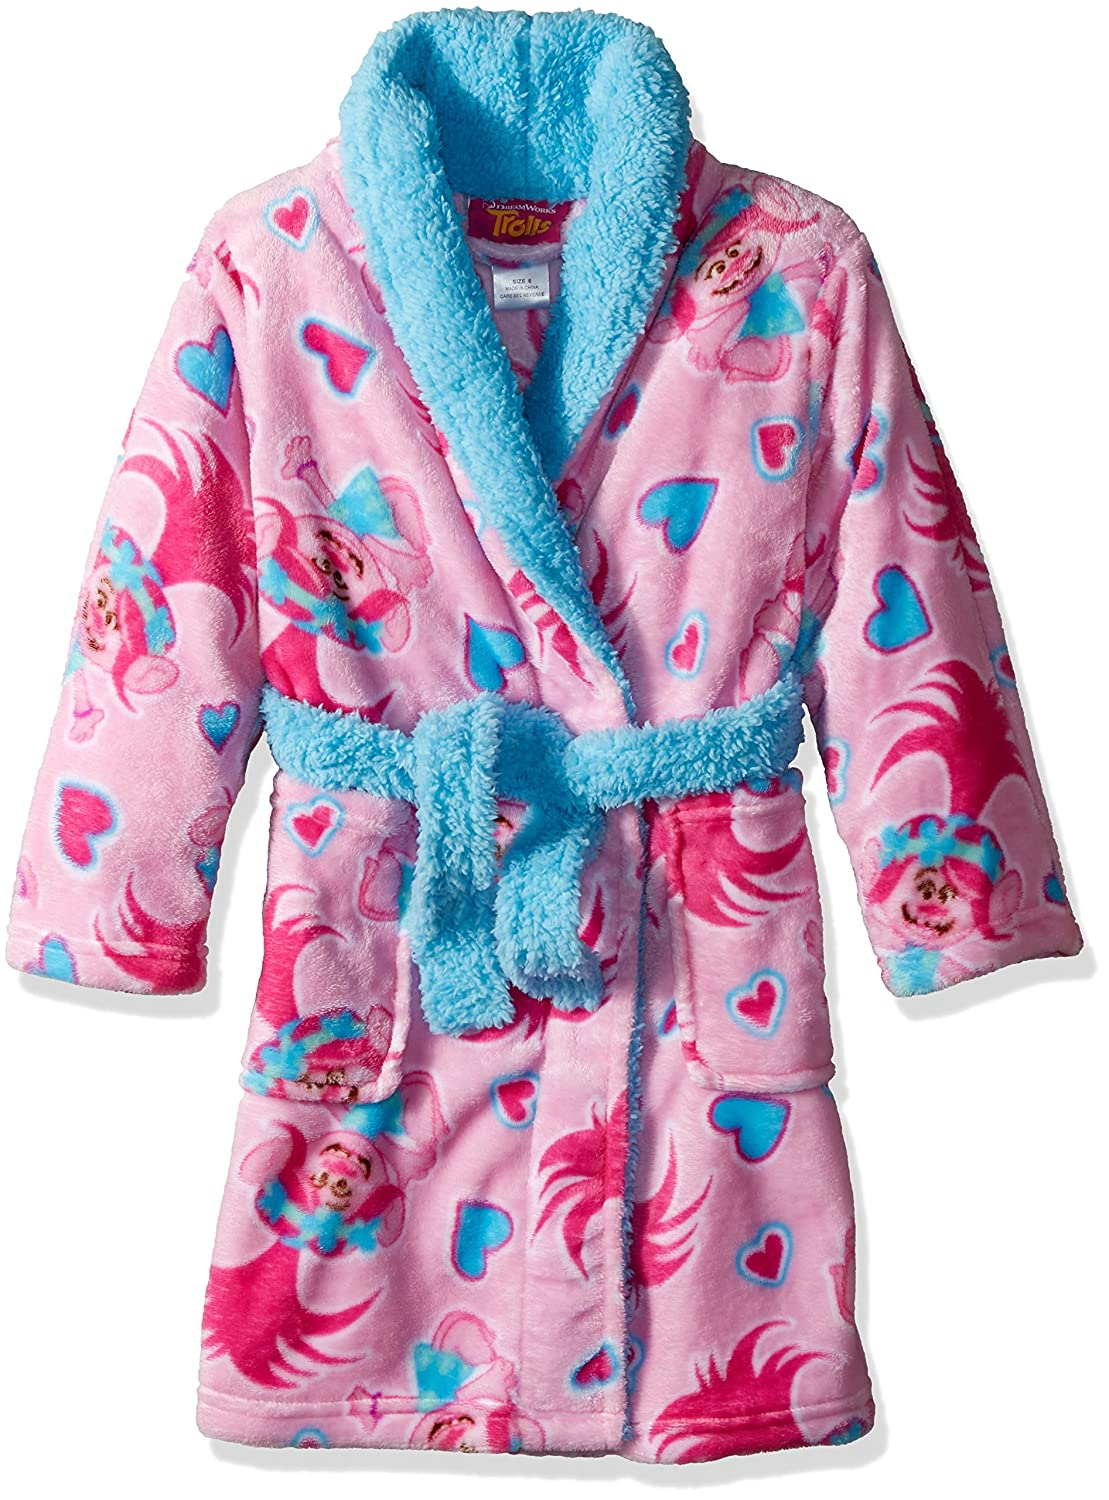 Trolls Girls Luxe Plush Robe 21TP118GRDZA-P6